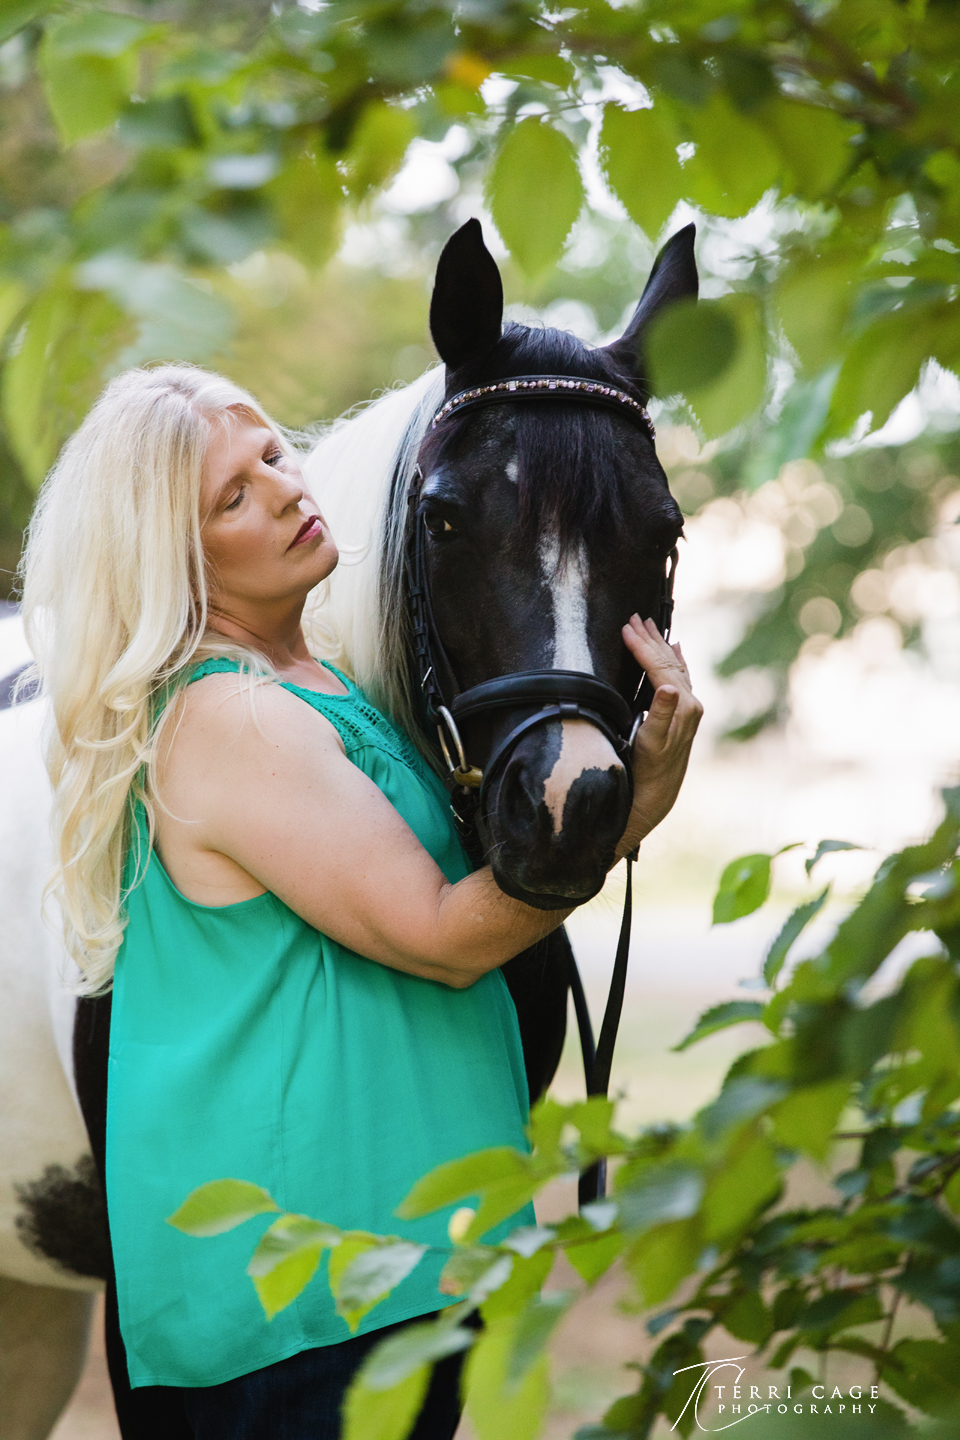 women with horse, equestrian portraits, southlake, texas, photographer, equine